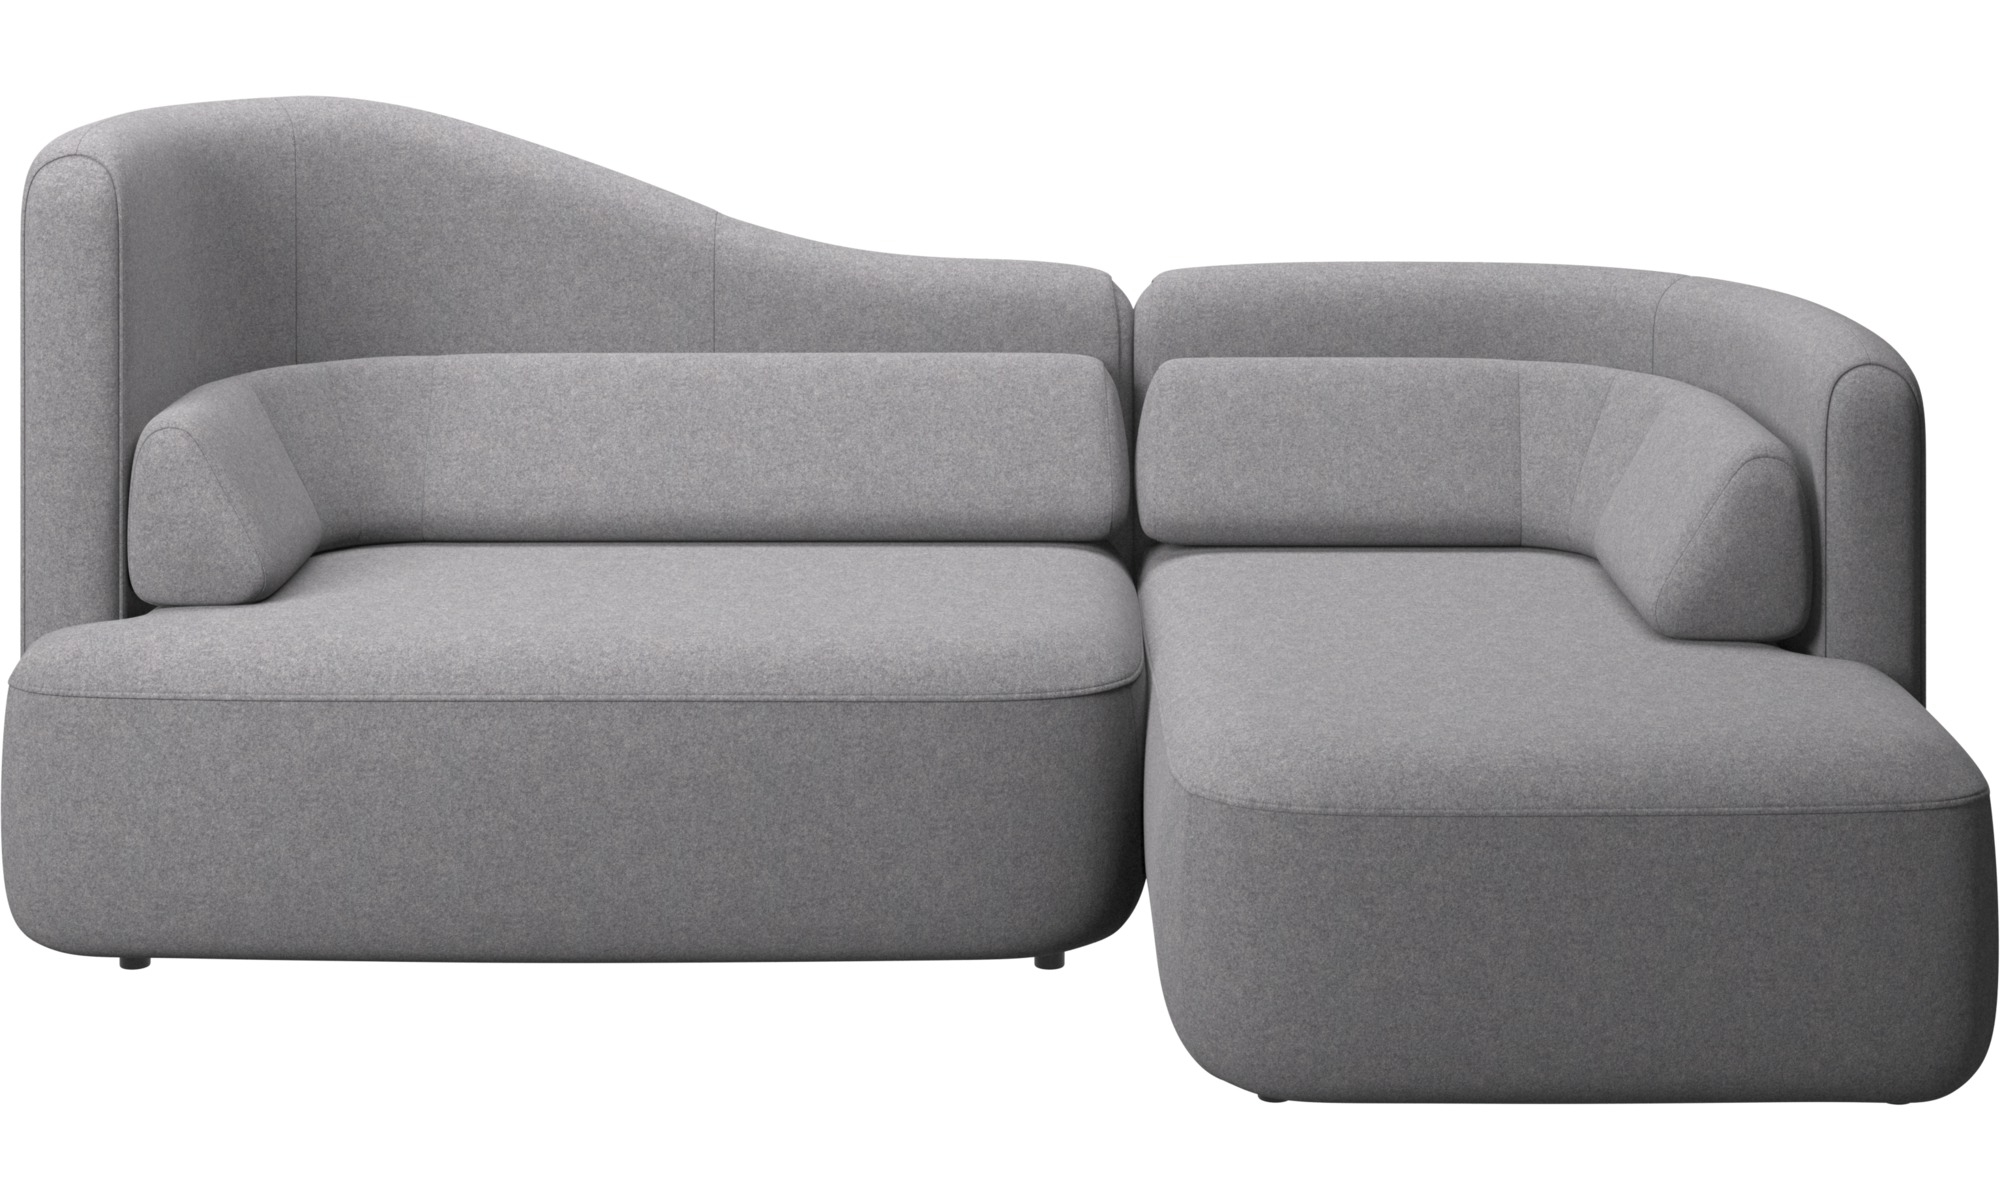 Famous Living Room : Modular Sofas For Small Spaces Space Saving Beds Intended For Small Modular Sofas (View 8 of 15)